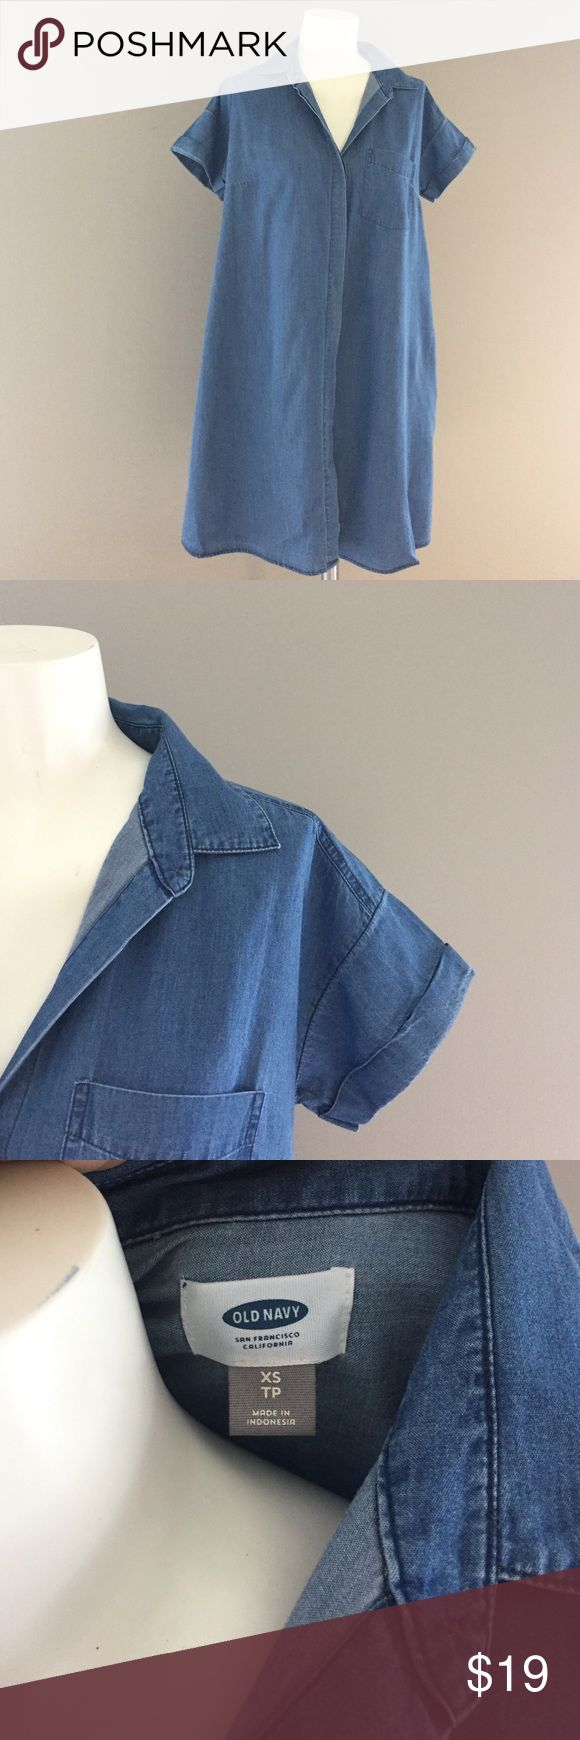 Denim chambray tent dress with pockets 100% cotton. Super comfy, roomy chambray dress. Tie a bandana around your neck and add booties or sandals to complete the look. Oh and IT HAS POCKETS! Old Navy Dresses Mini